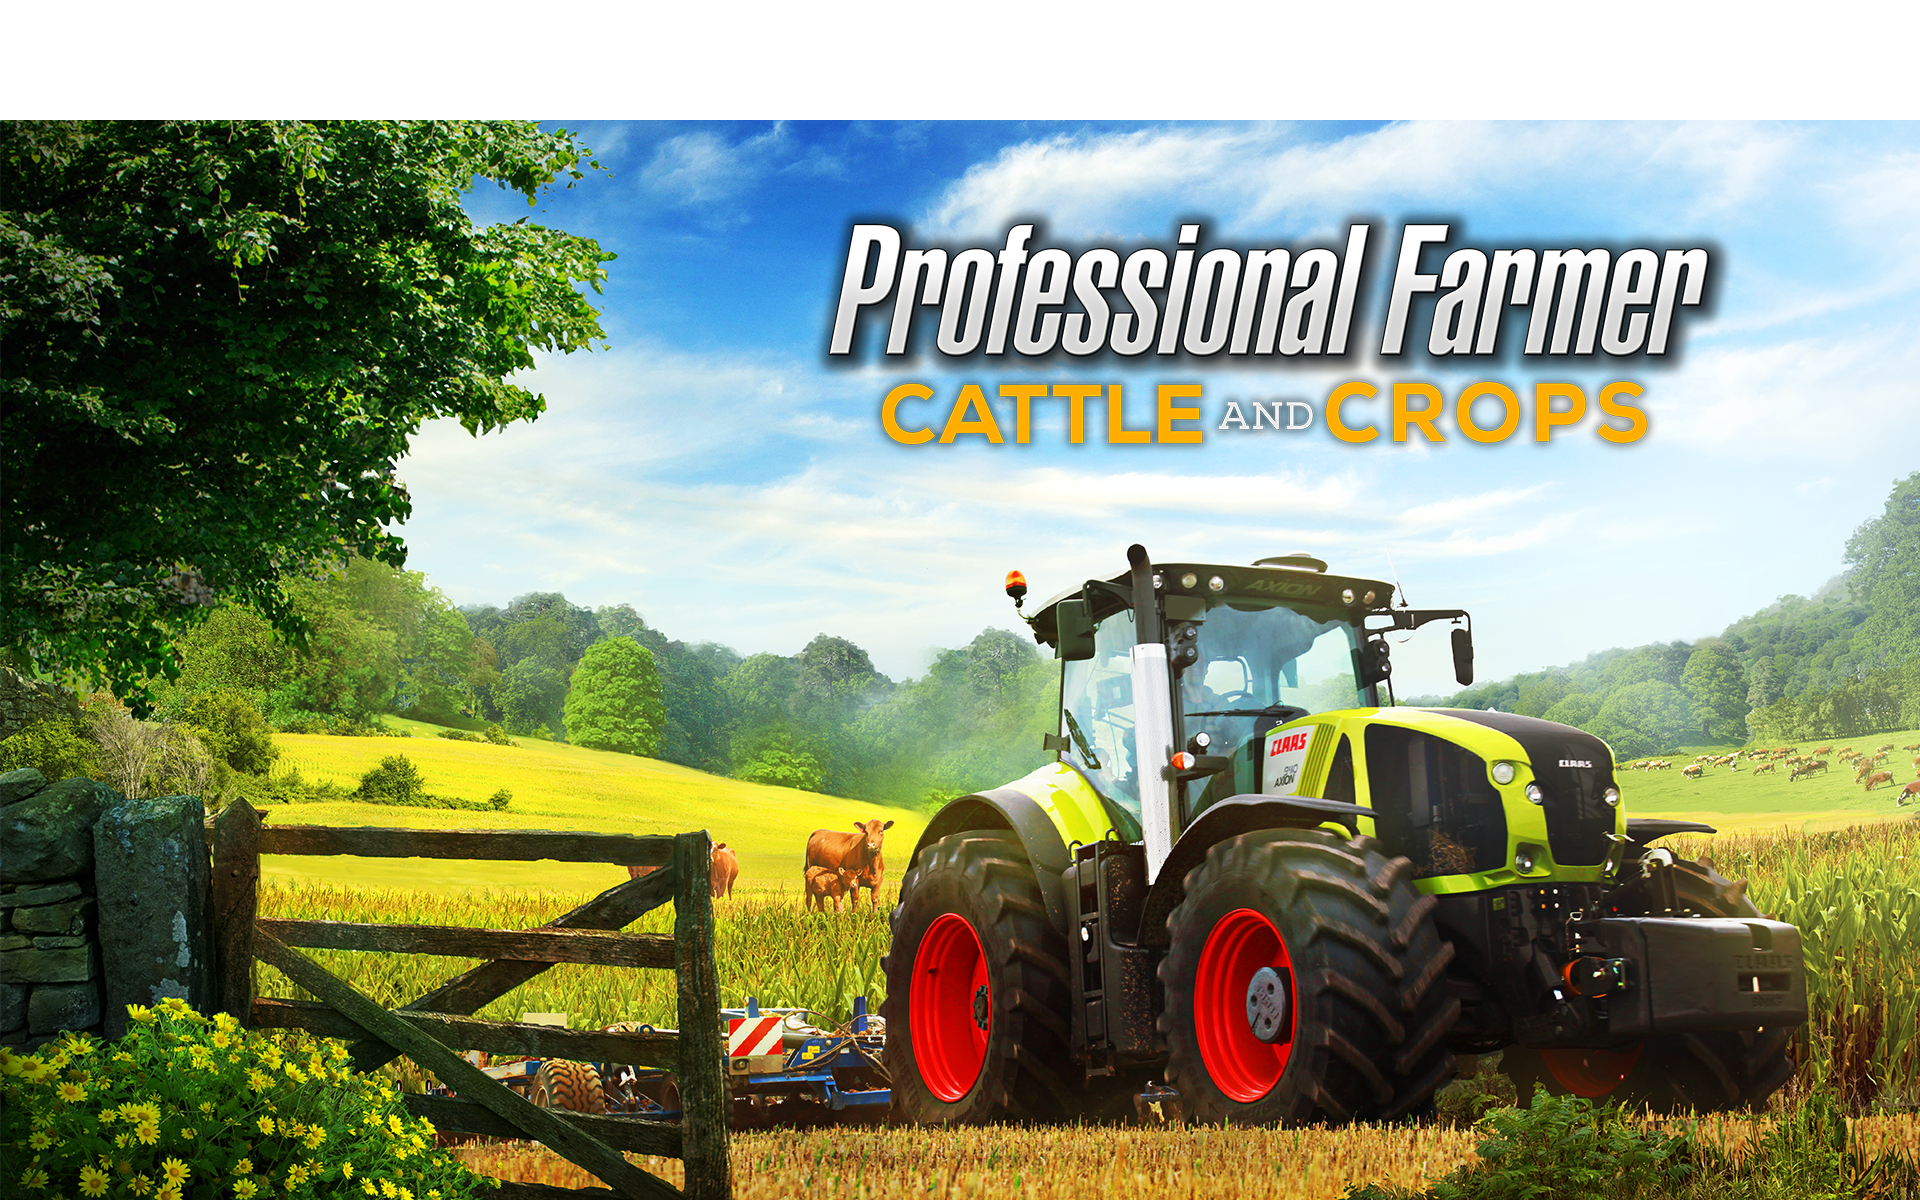 Professional farmer cattle and crops